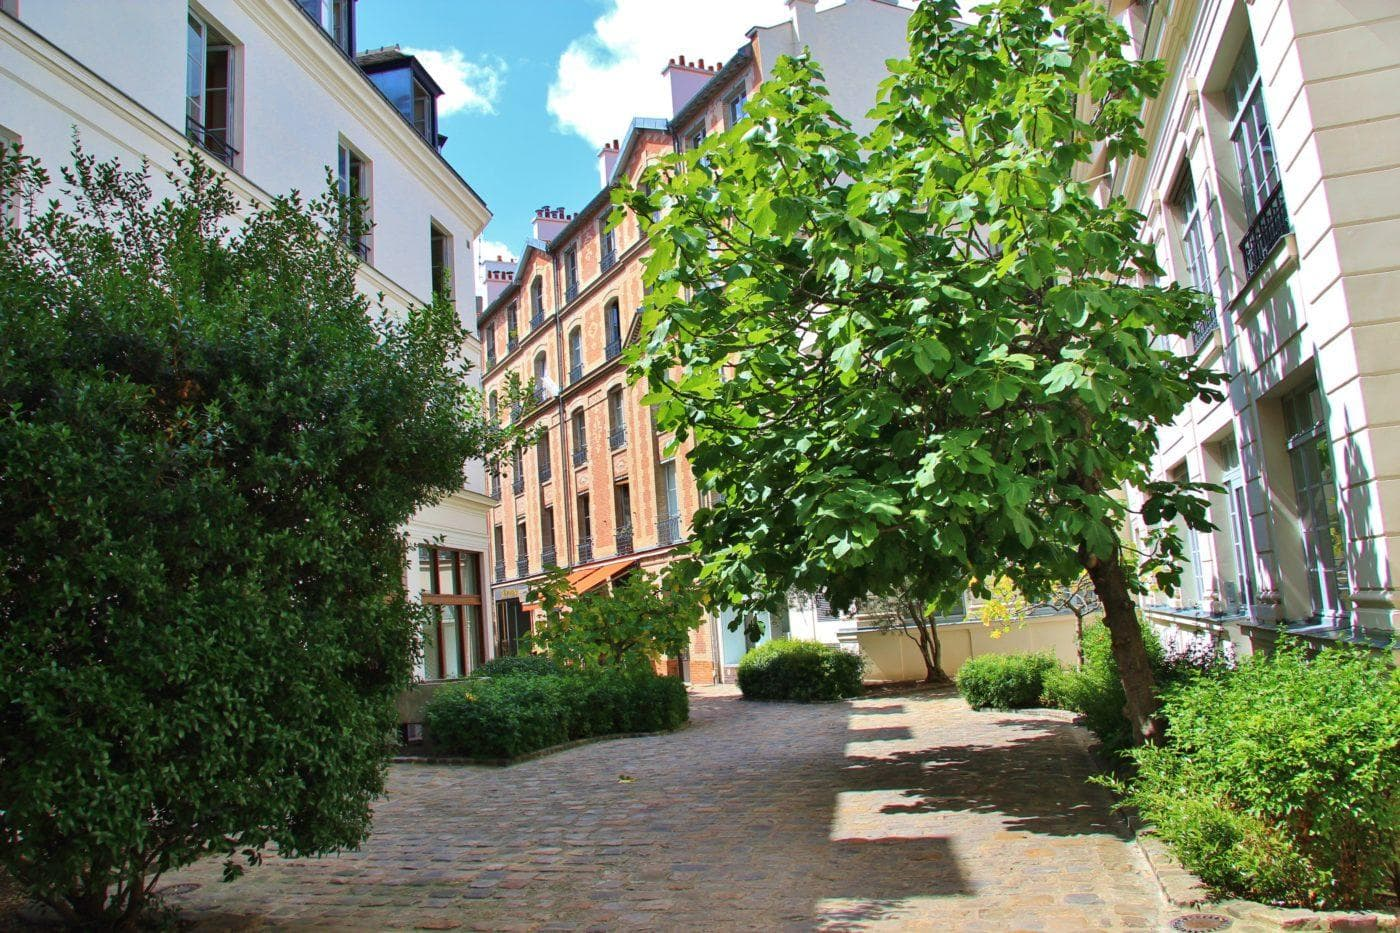 Les passages secrets de St Germain